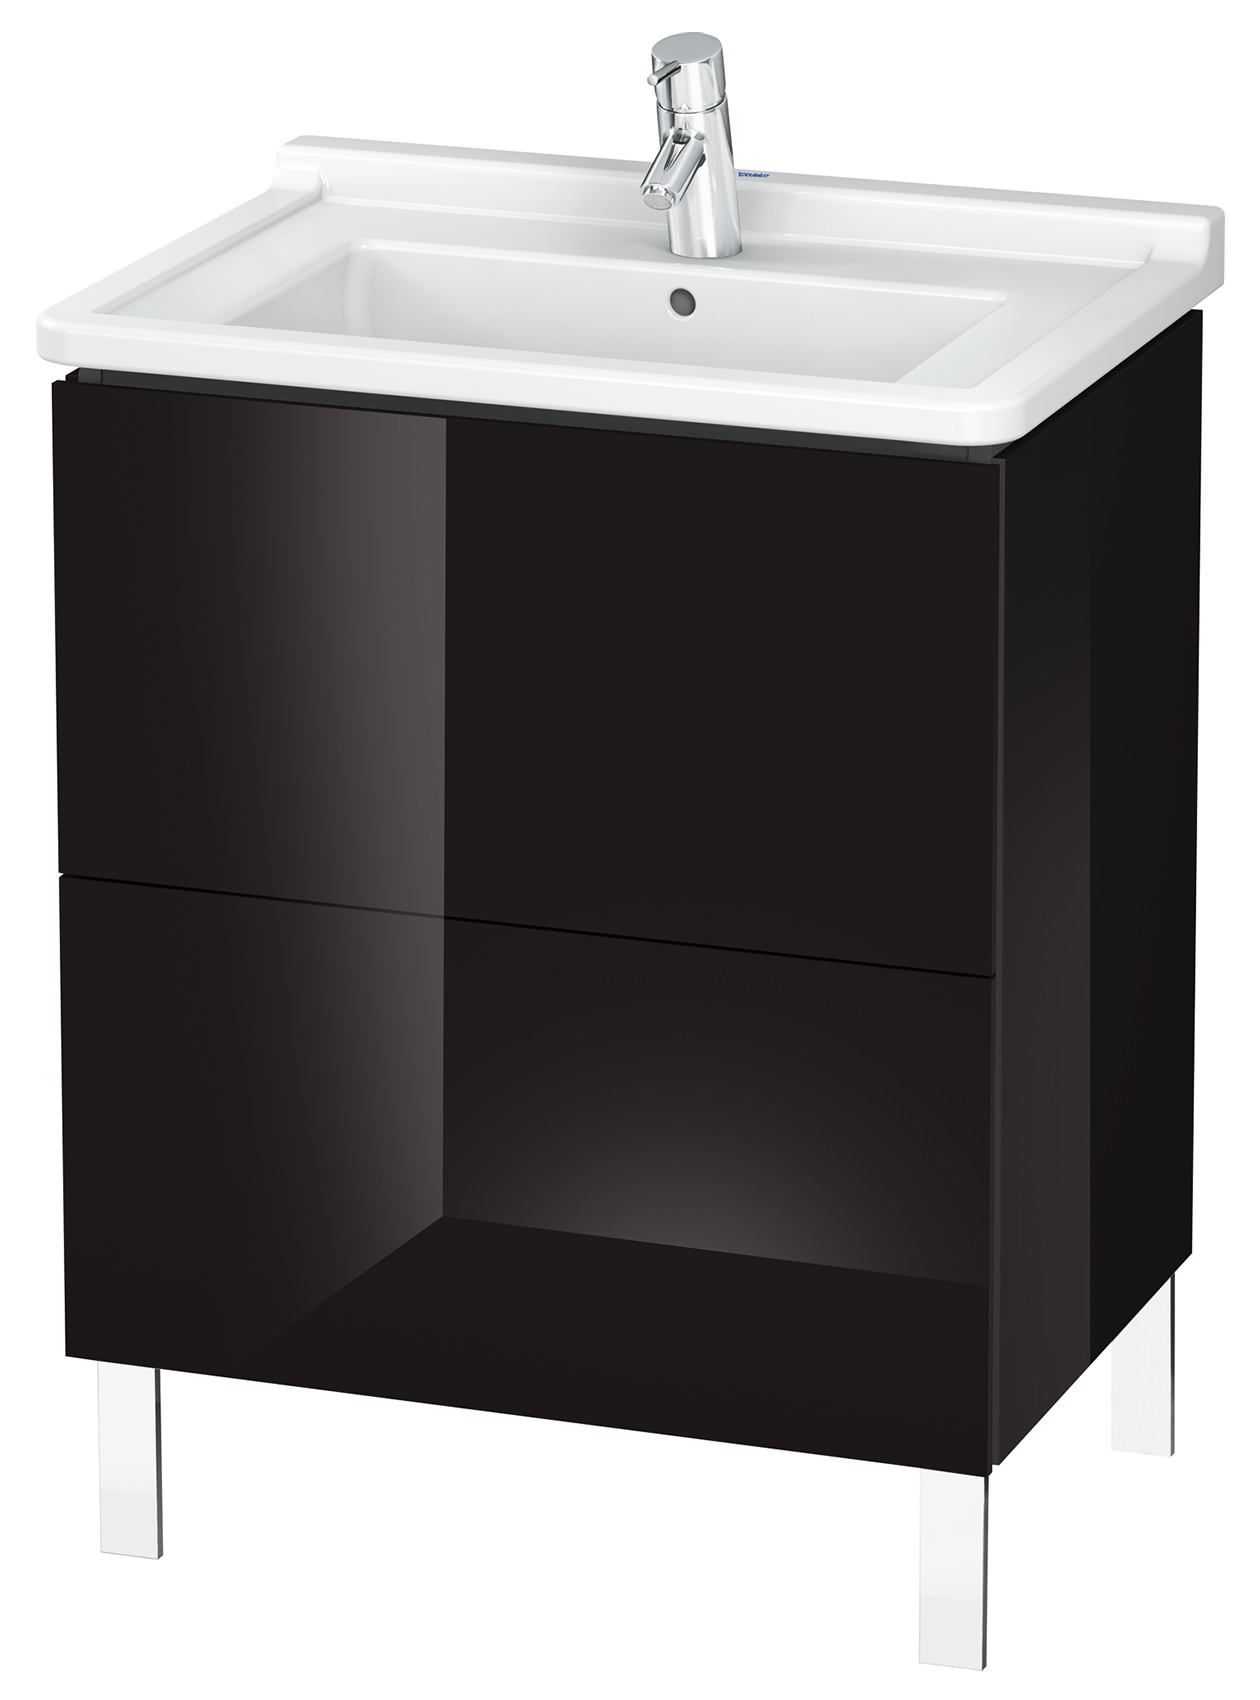 duravit l cube 670mm floor standing vanity unit with starck 3 basin. Black Bedroom Furniture Sets. Home Design Ideas